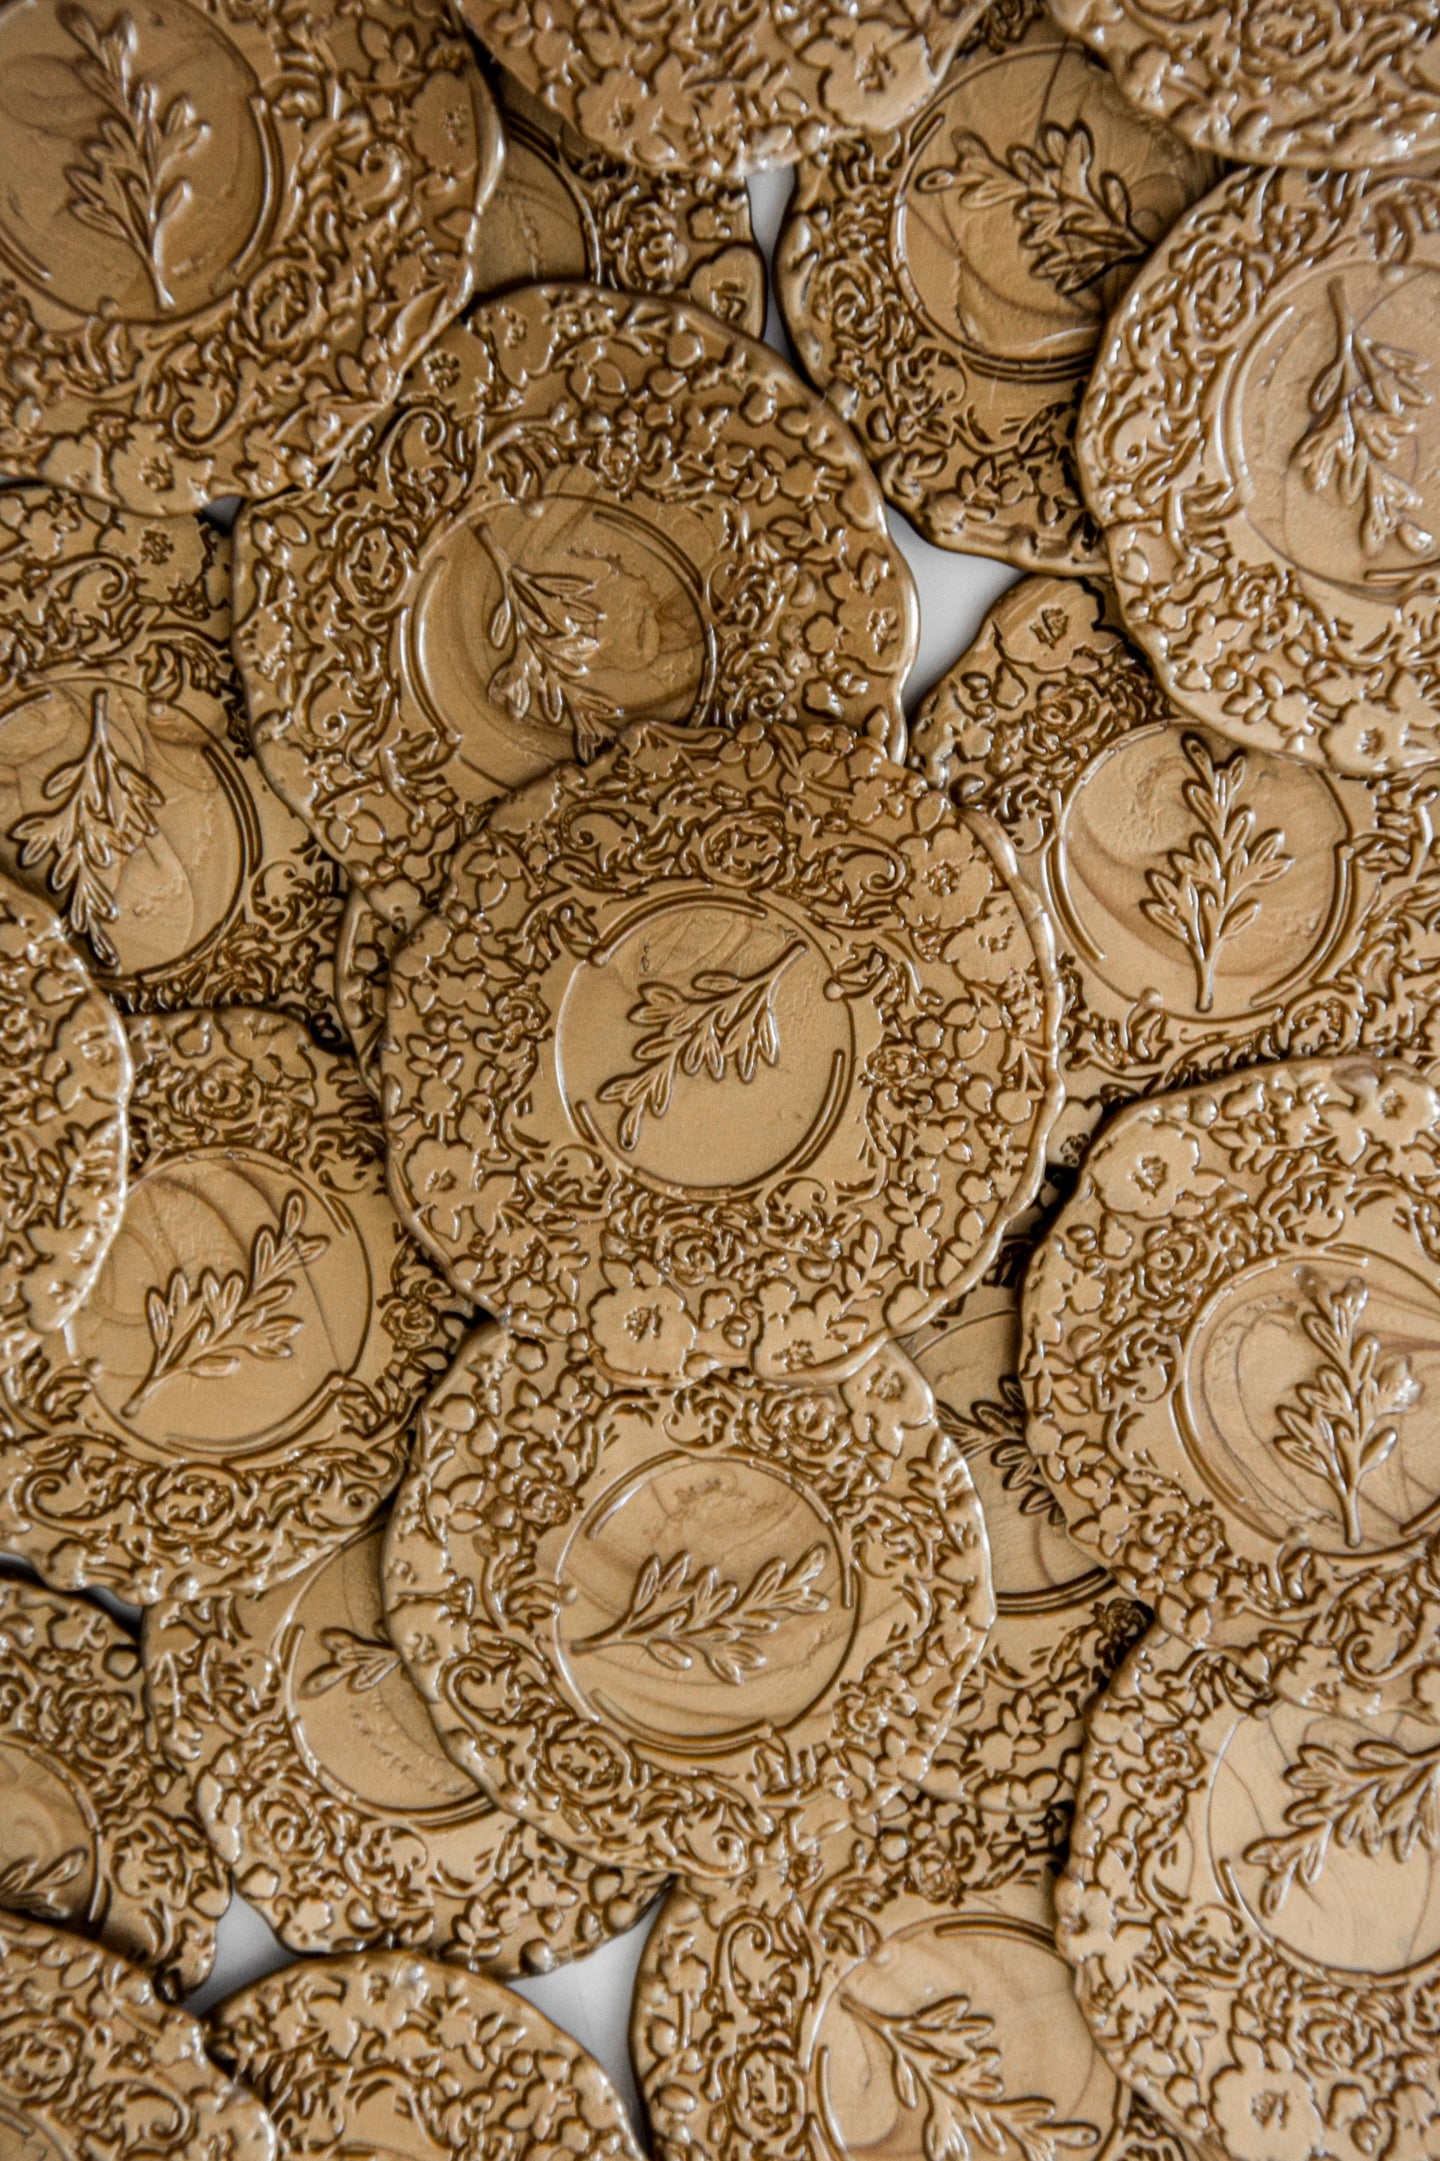 Wax Seals - Large Flower - Set of 10